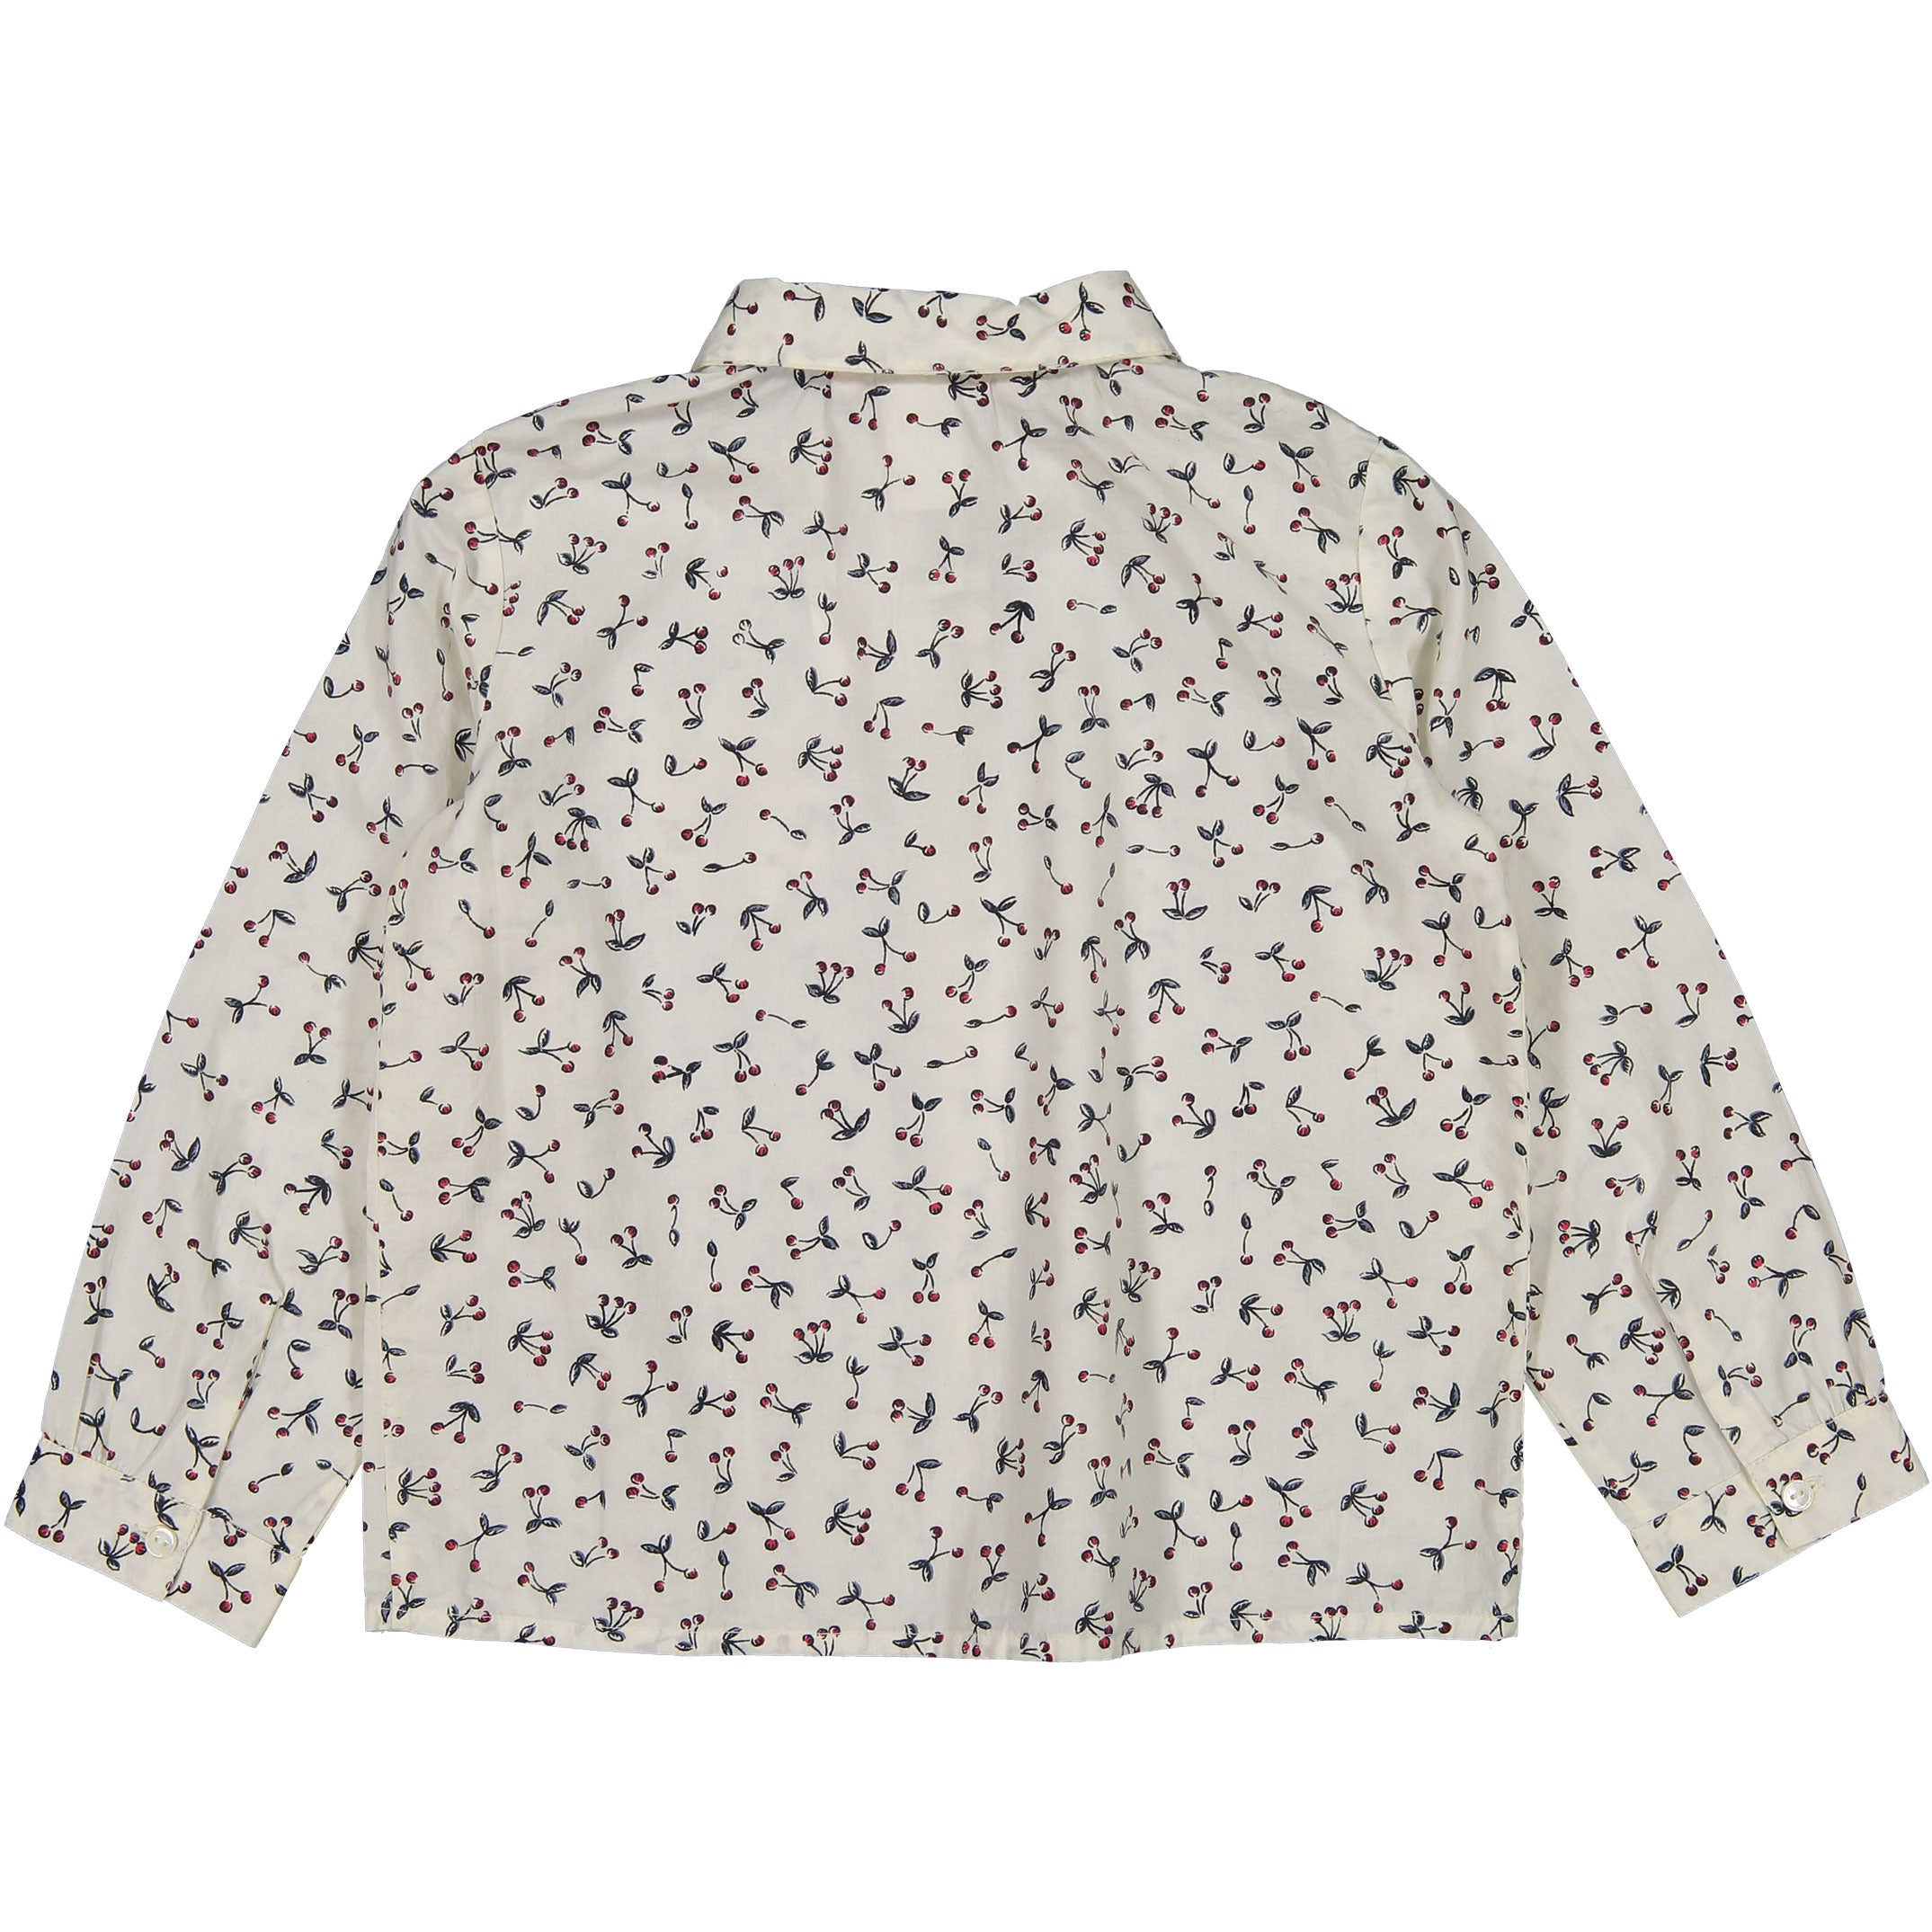 Bonpoint Ecru Cherry Blouse - Ladida